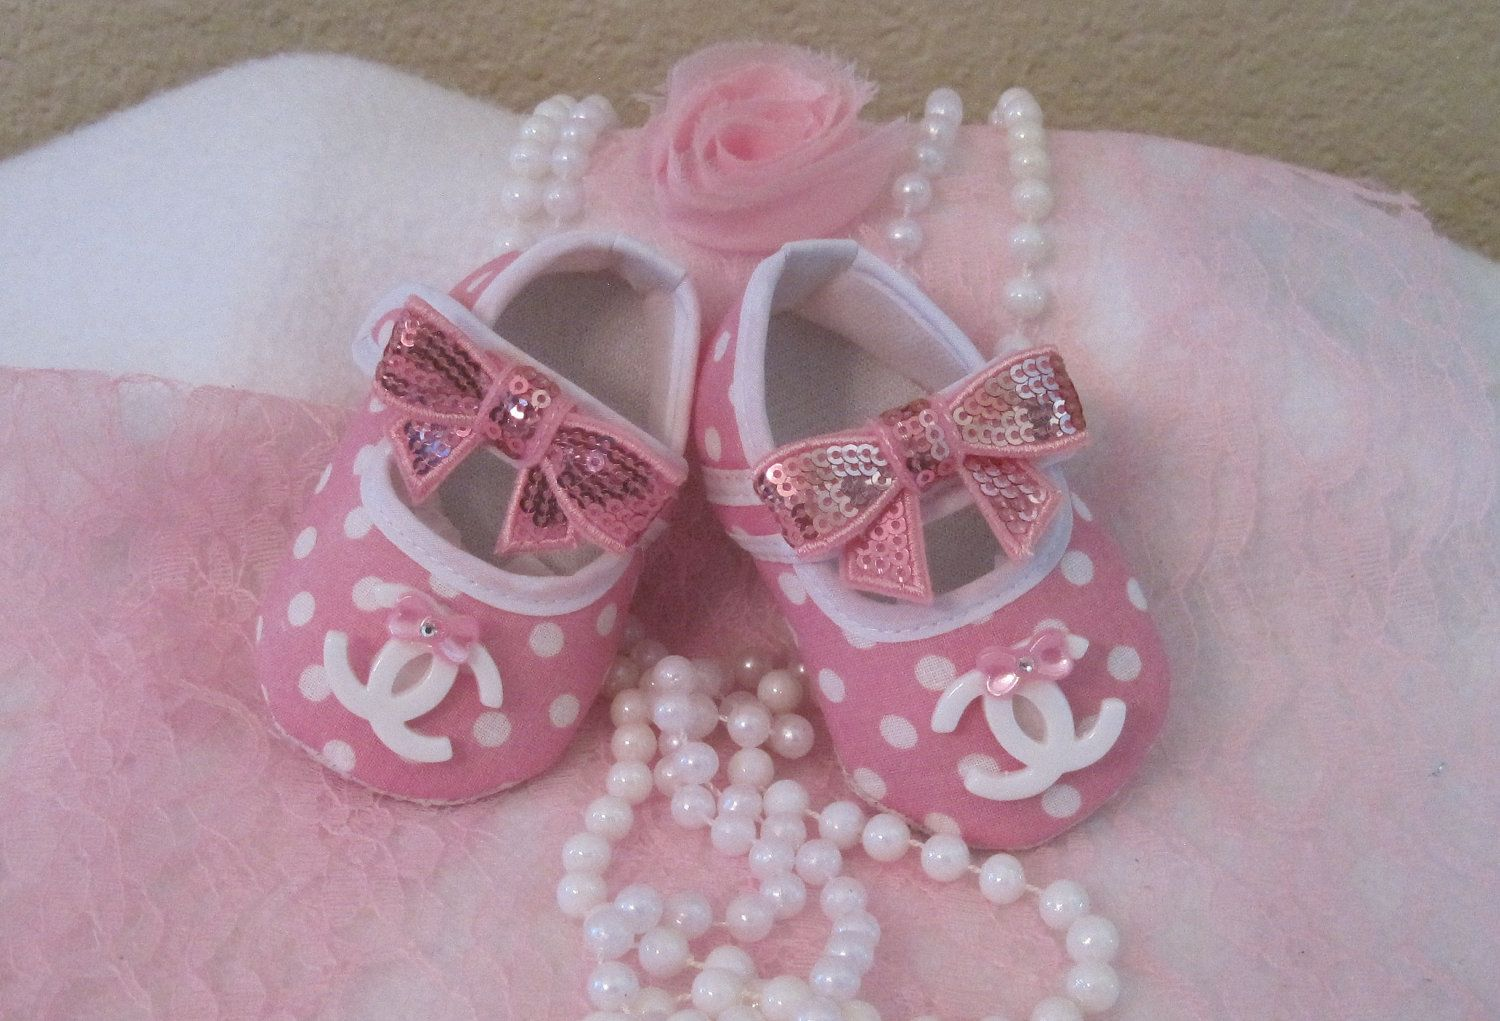 chanel baby shoes 28 images the zhush random chanel